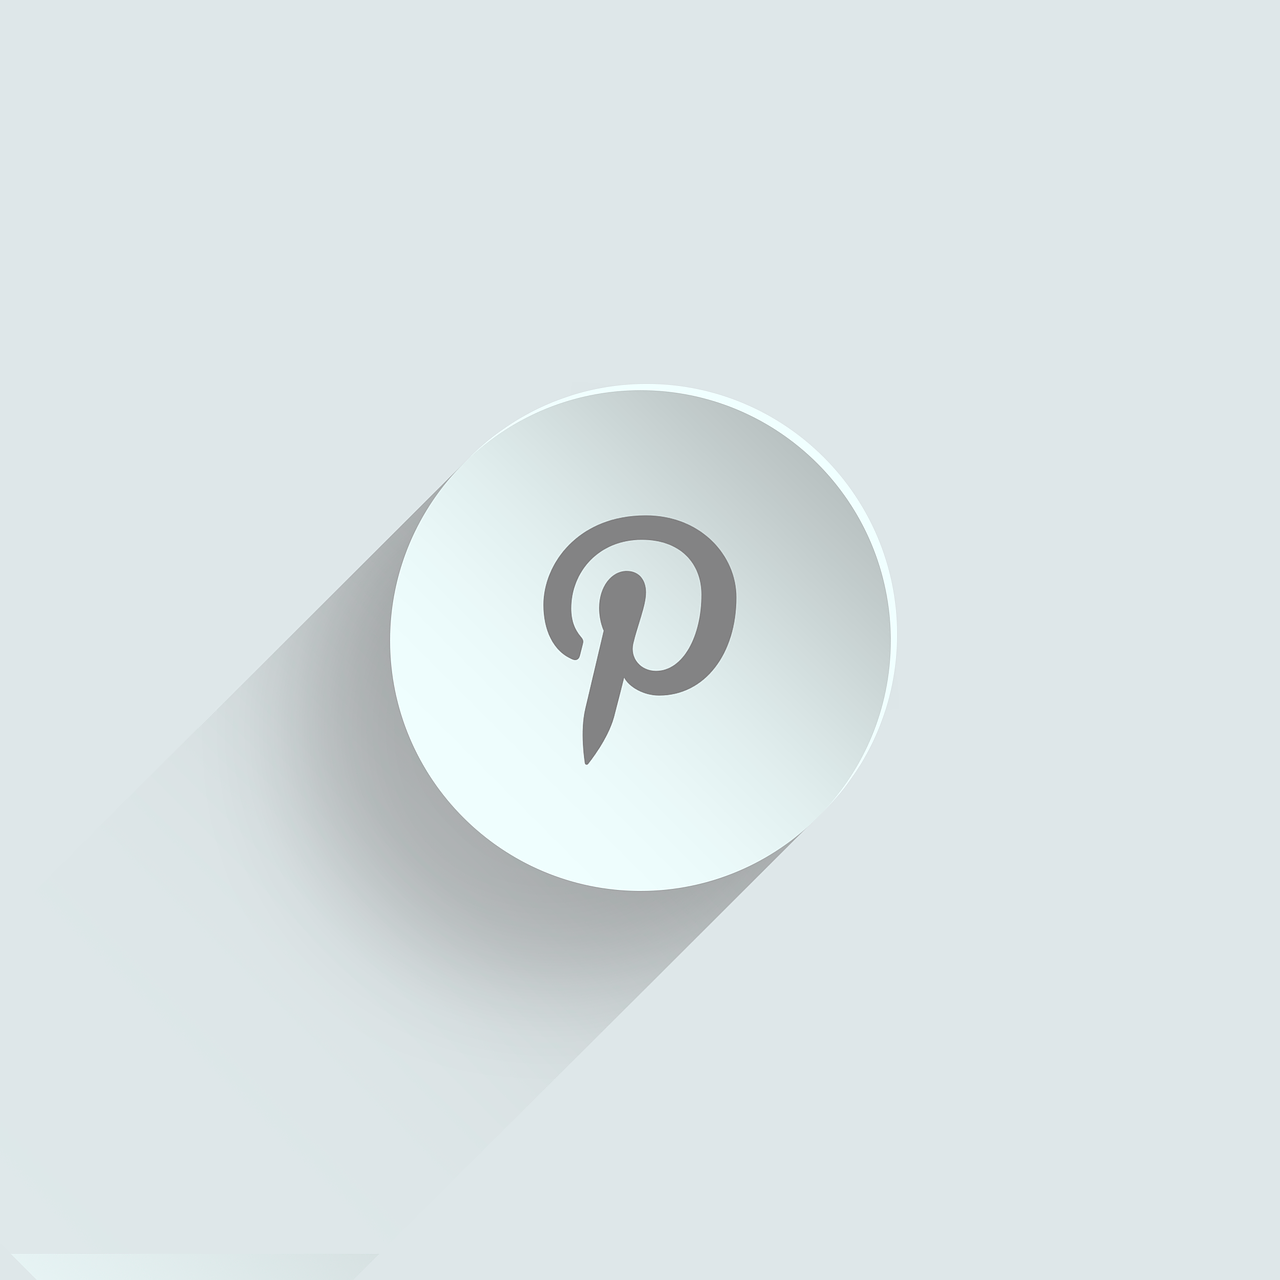 Creative Ways To Revisit Your Paid Pinterest Efforts